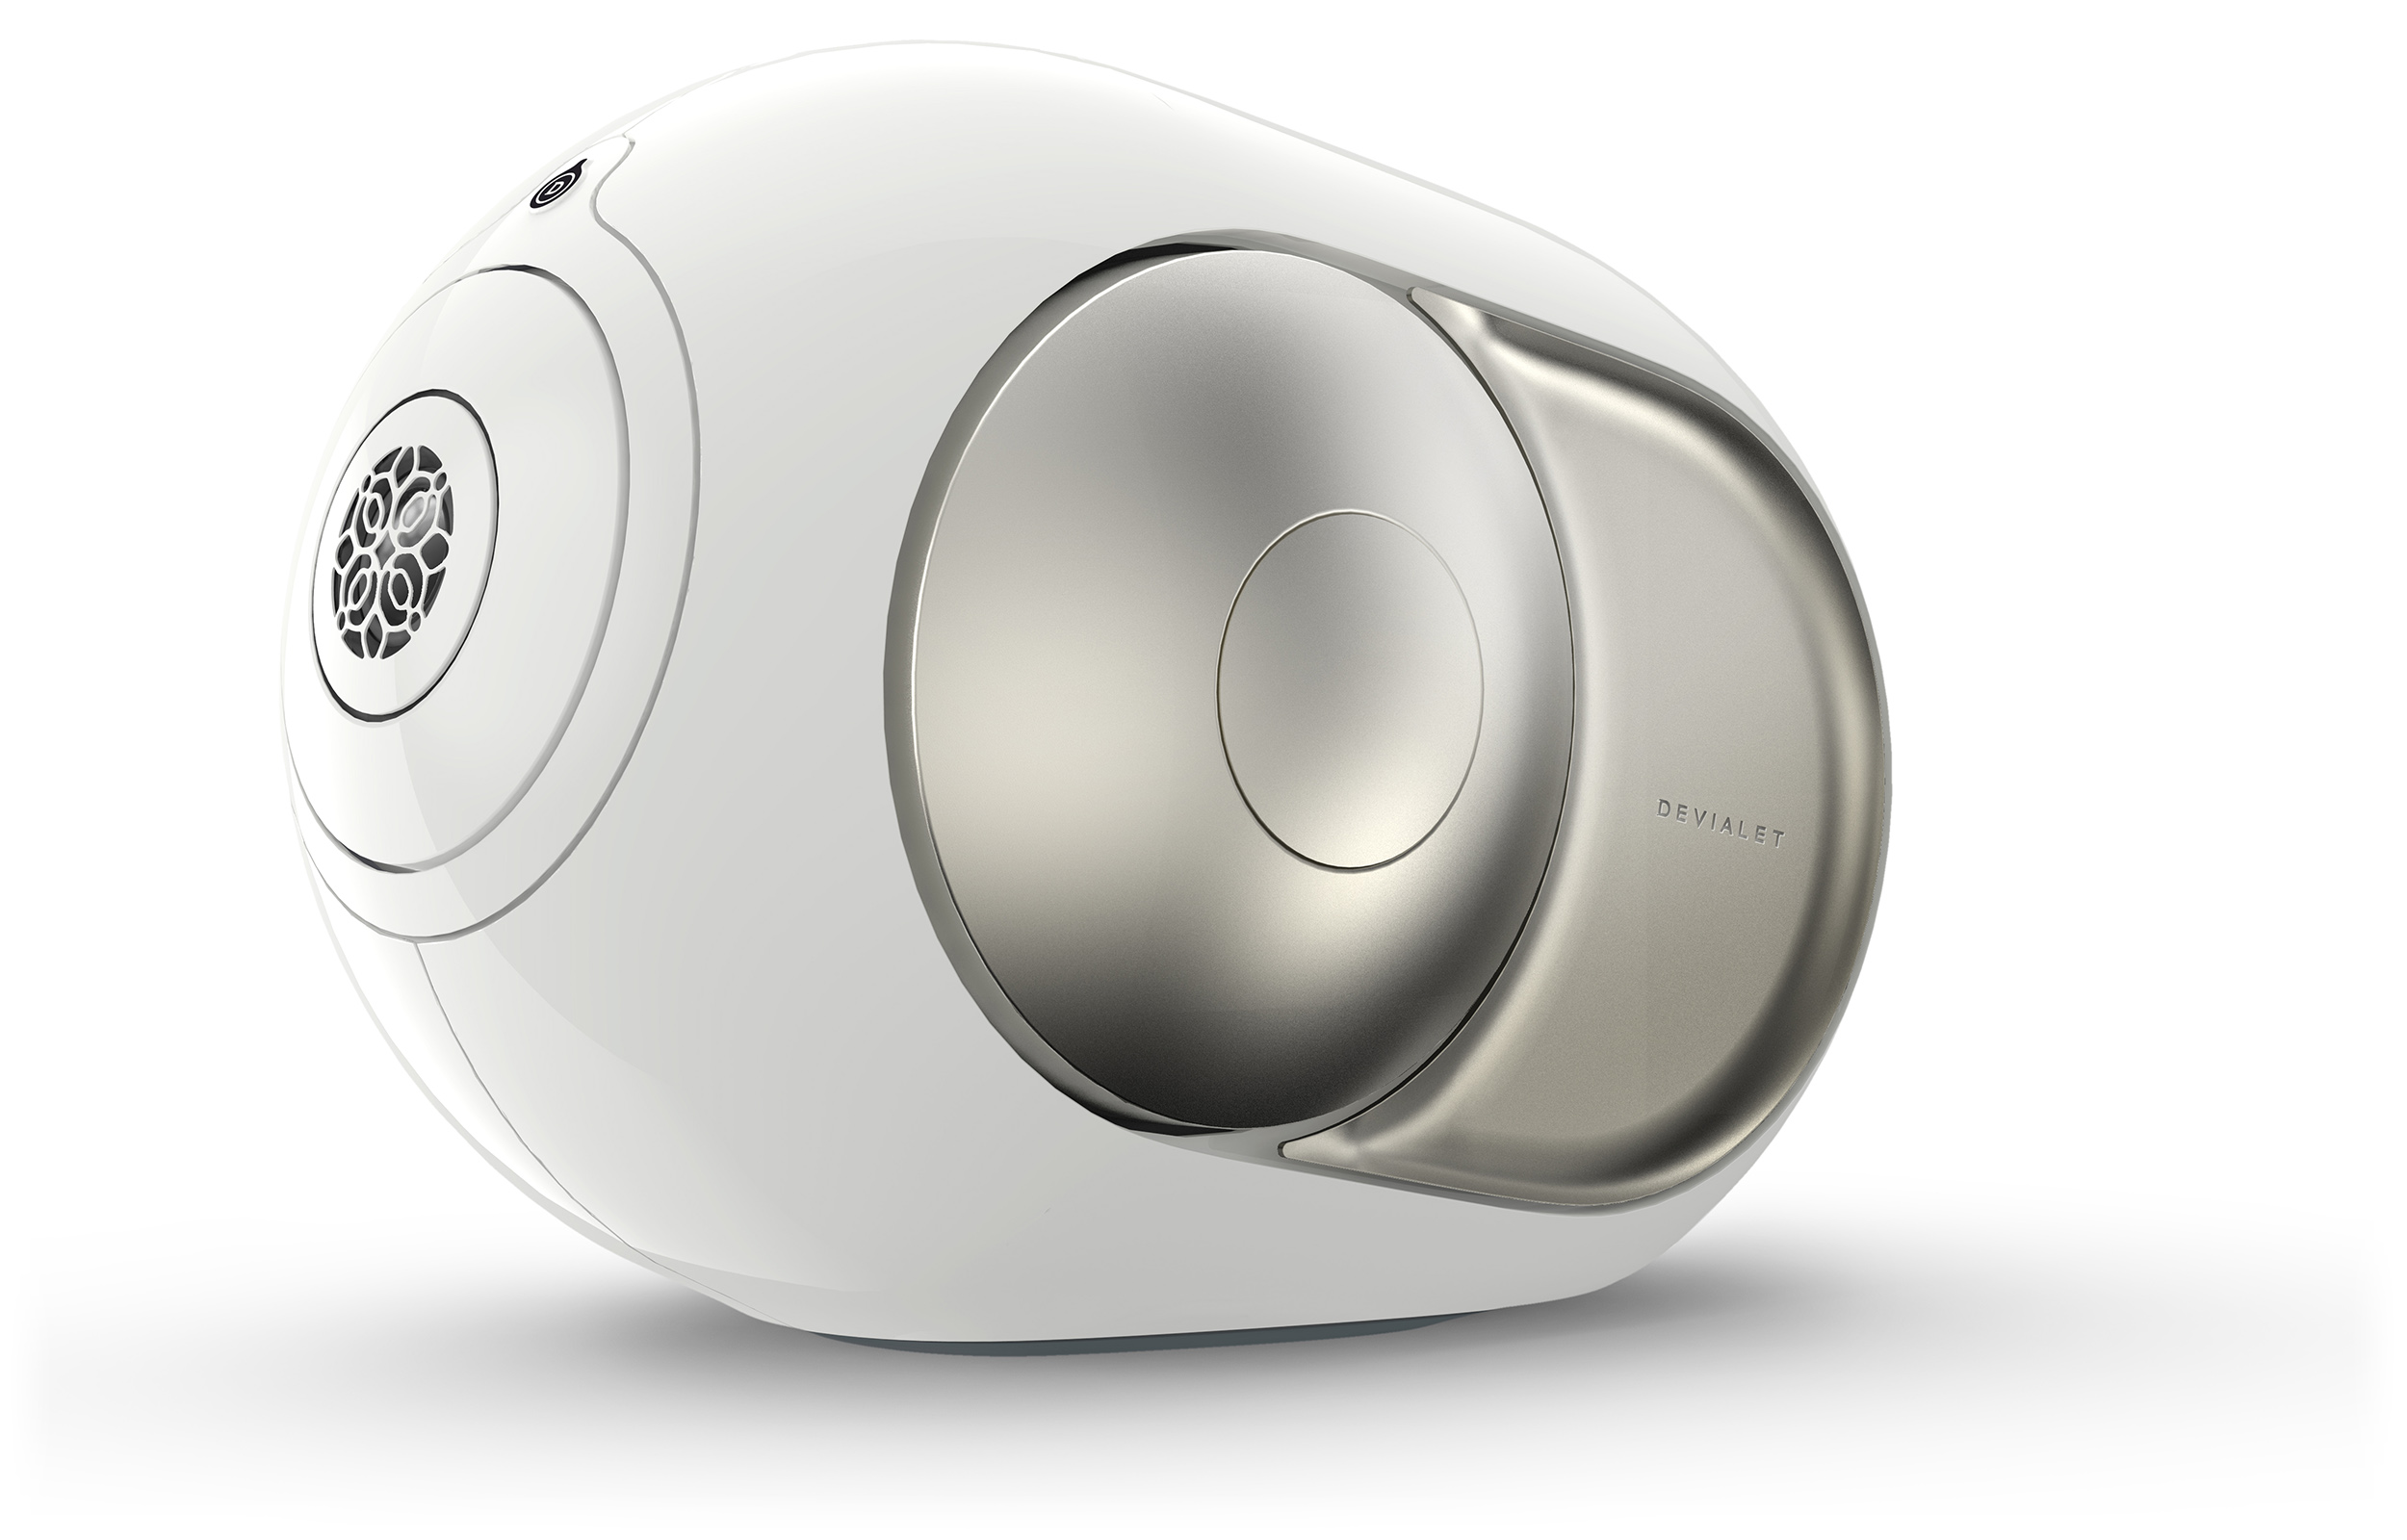 Apple retail stores now selling Devialet's high-end Phantom speakers